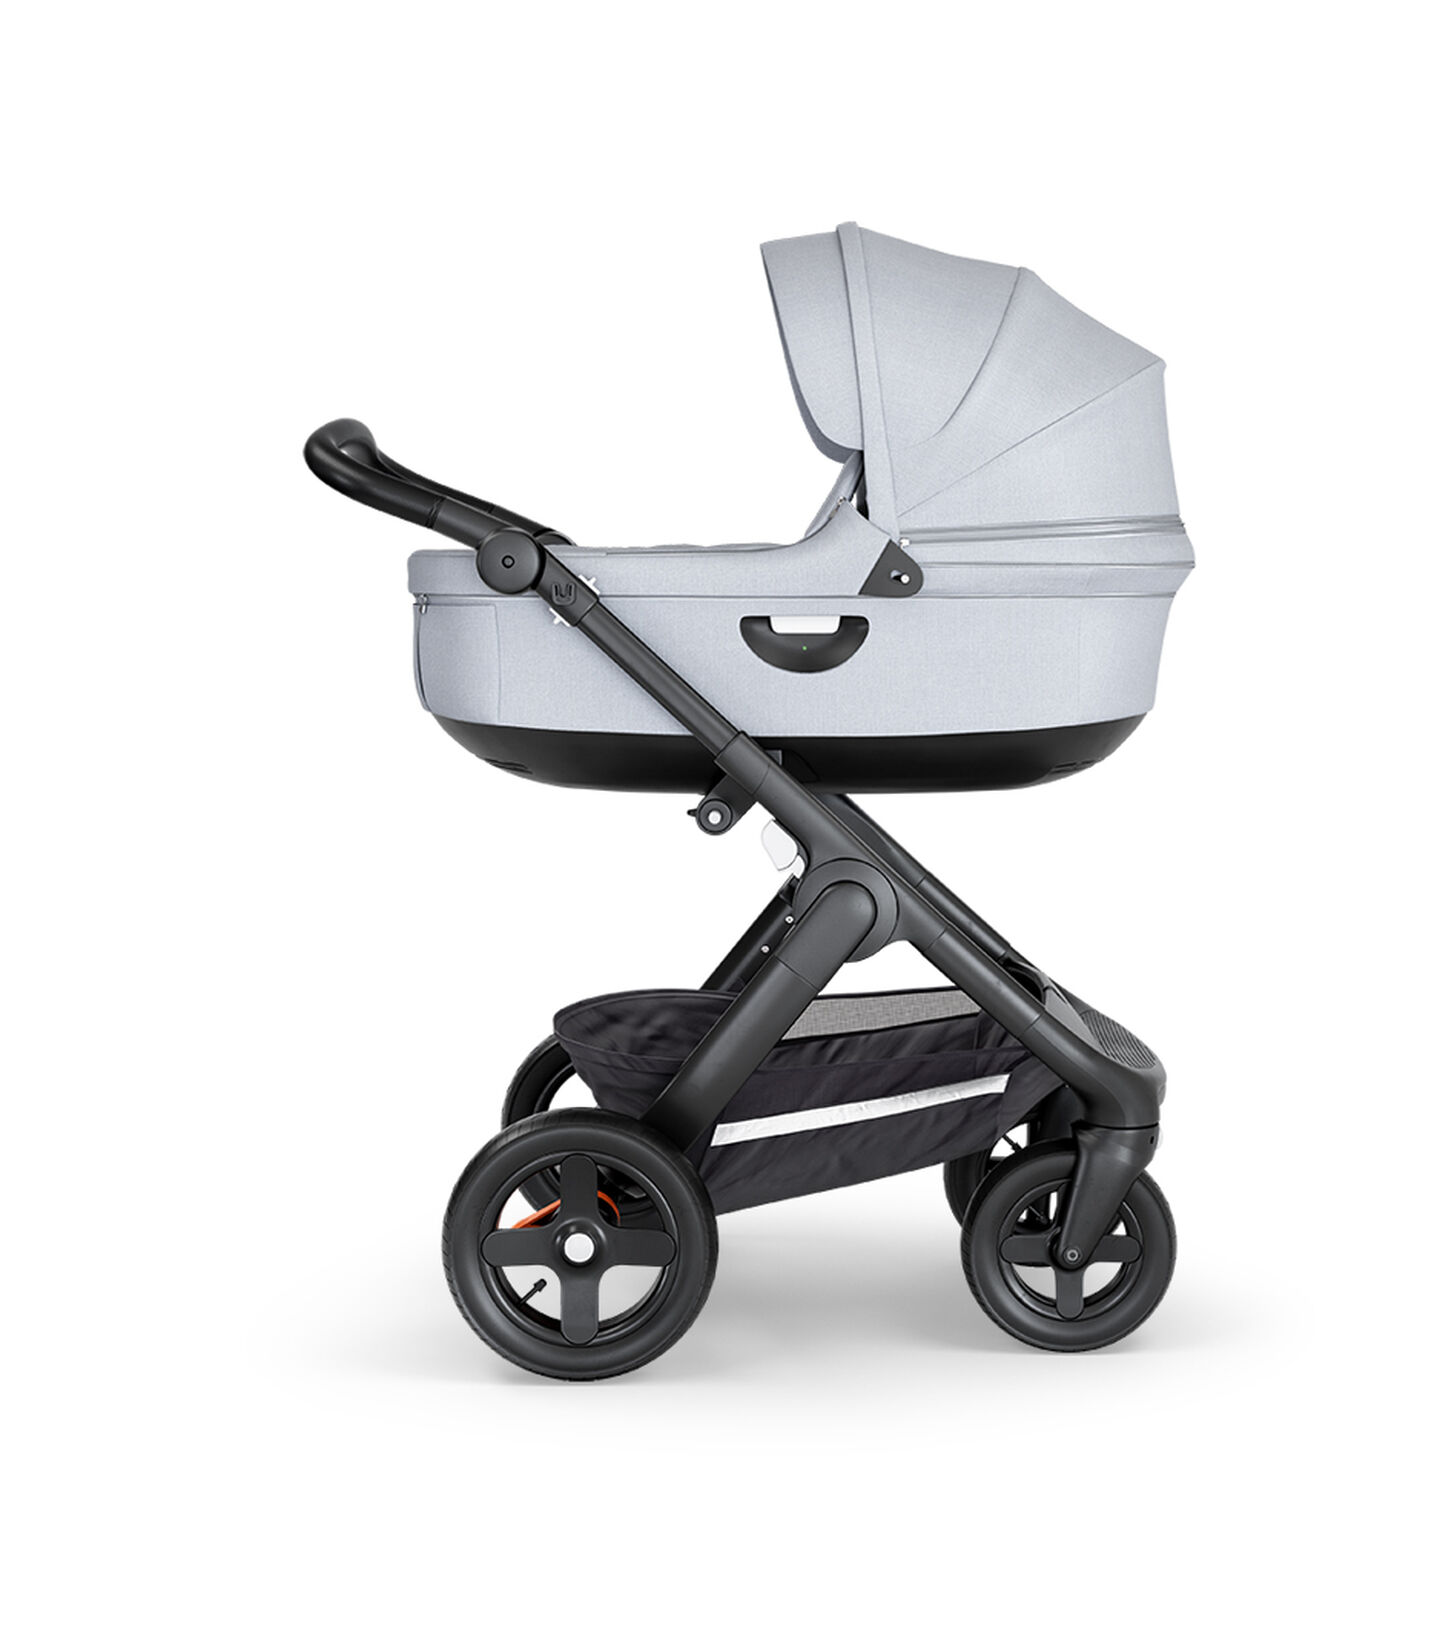 Stokke® Trailz™ with Black Chassis, Black Leatherette and Terrain Wheels. Stokke® Stroller Carry Cot, Grey Melange.